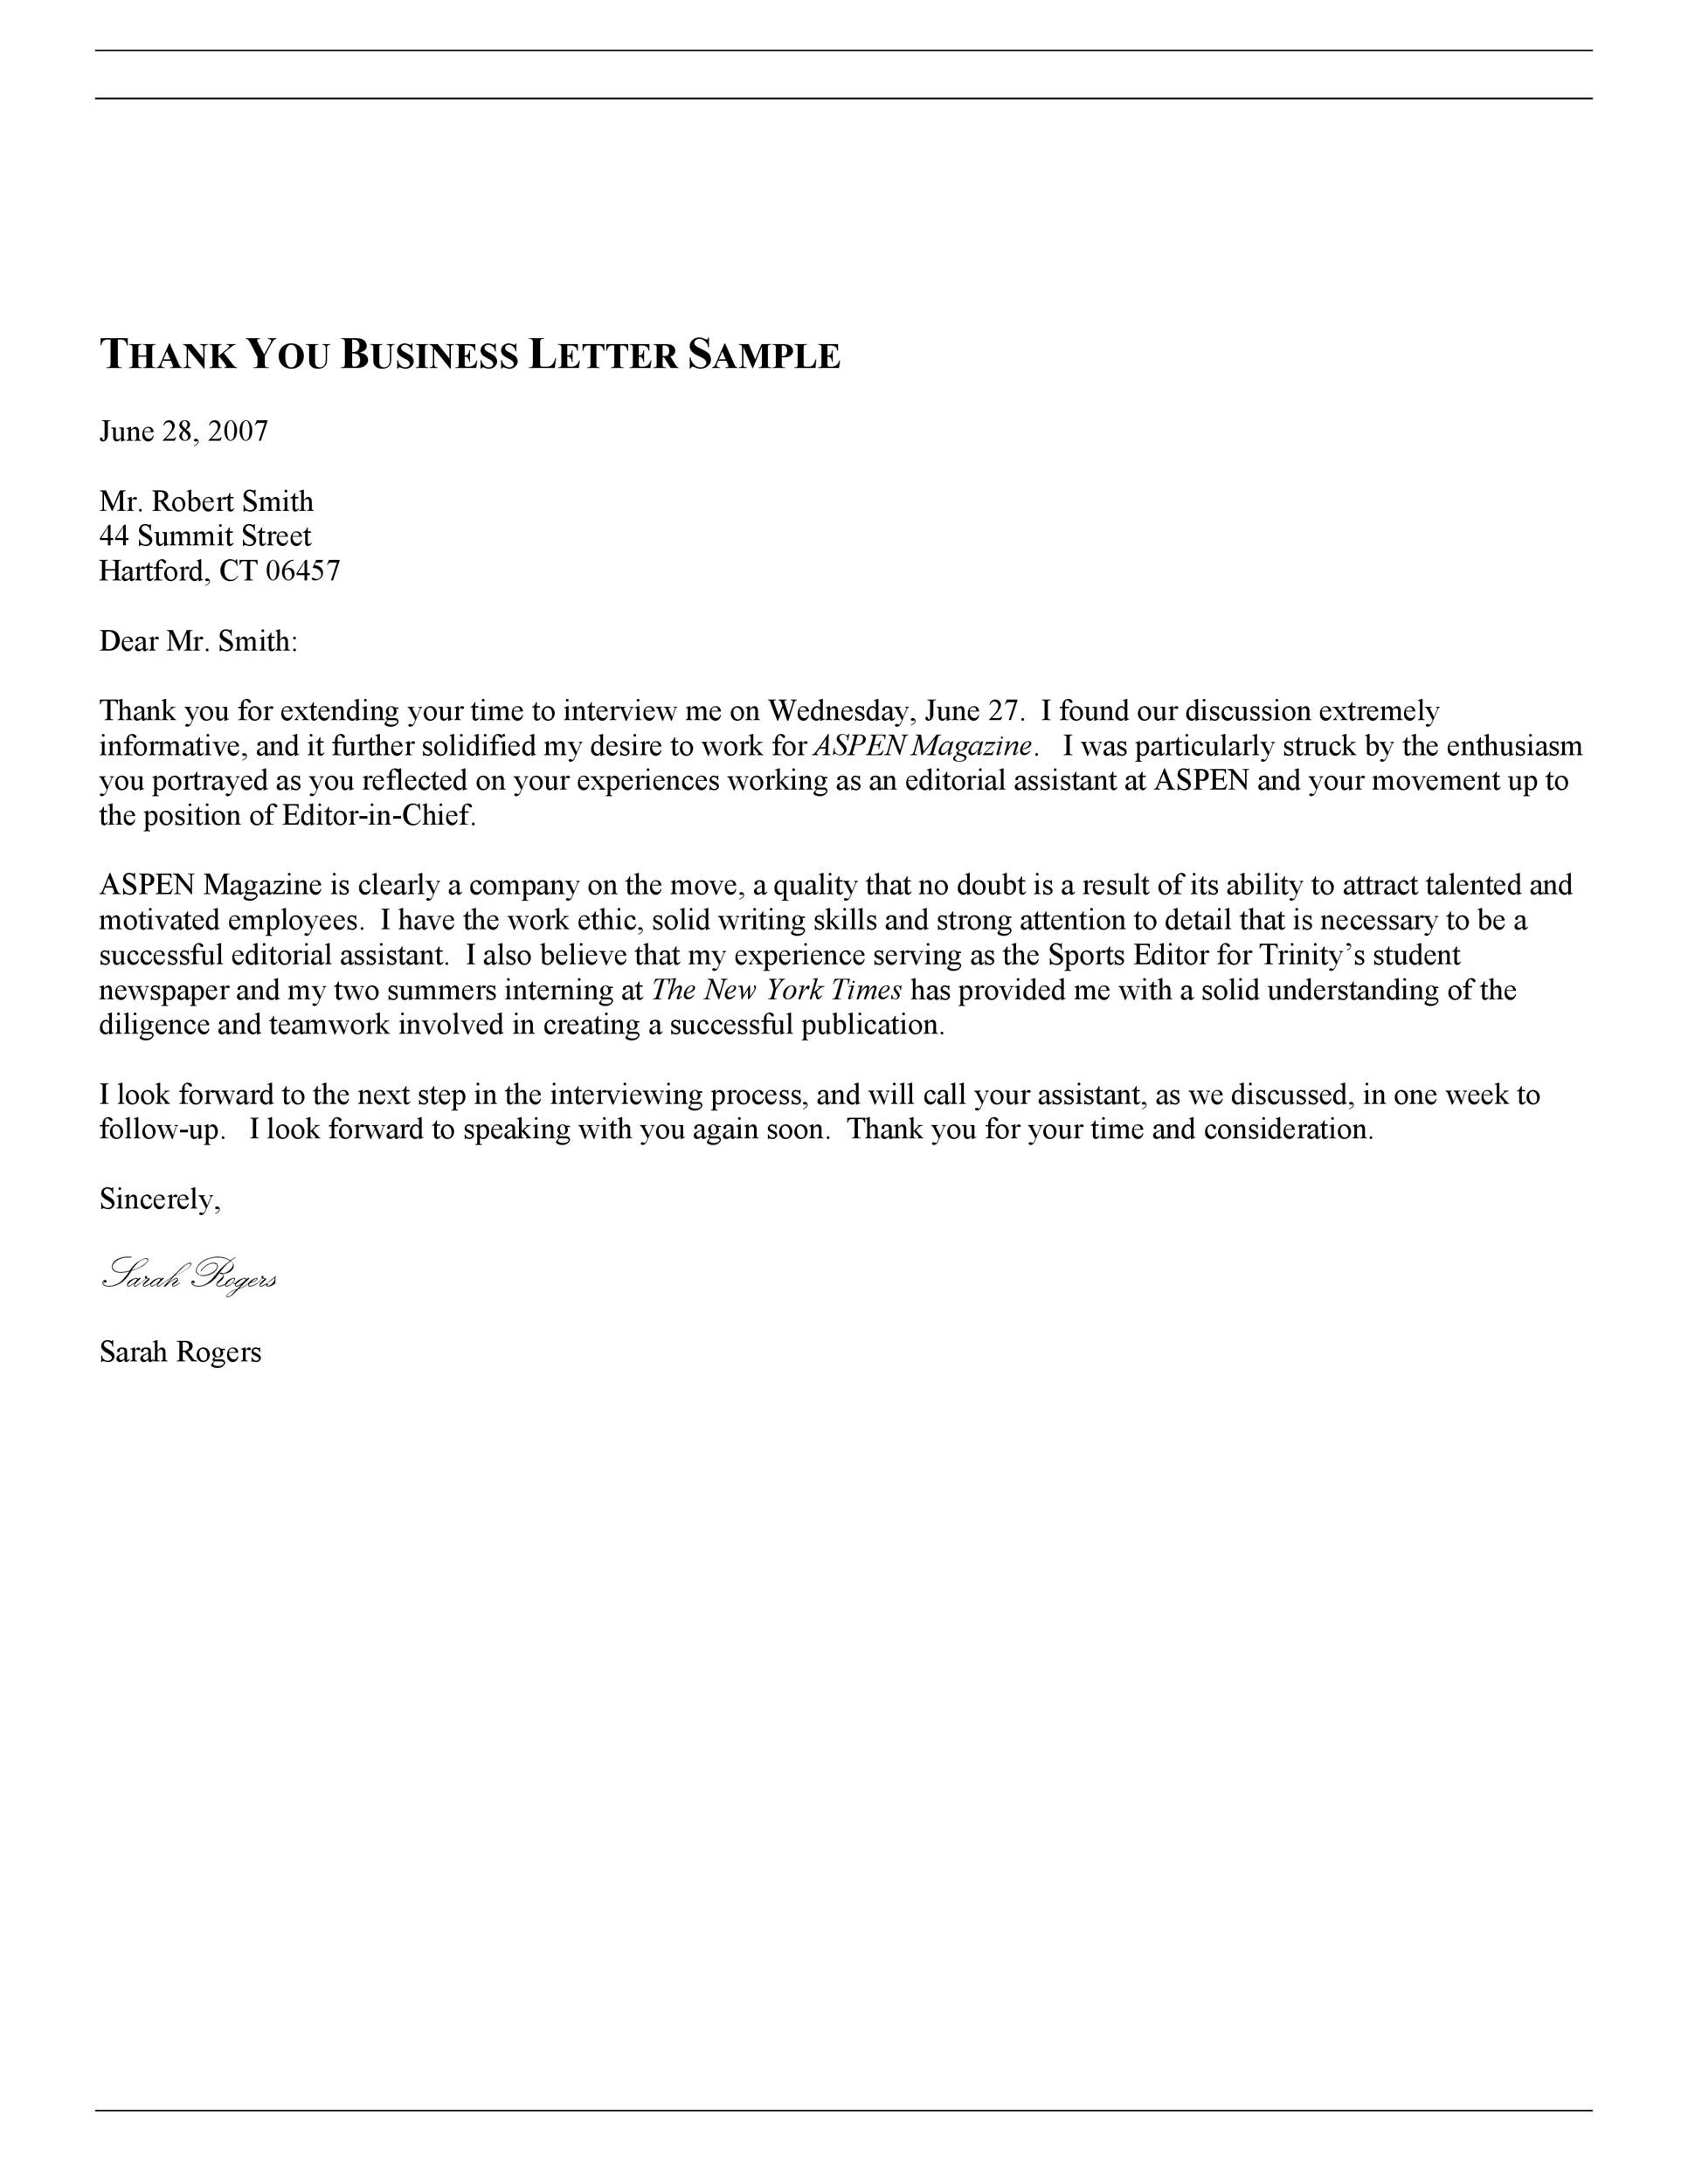 30 Thank you Letter Templates ScholarshipDonationBoss – Thank You for Your Business Letter